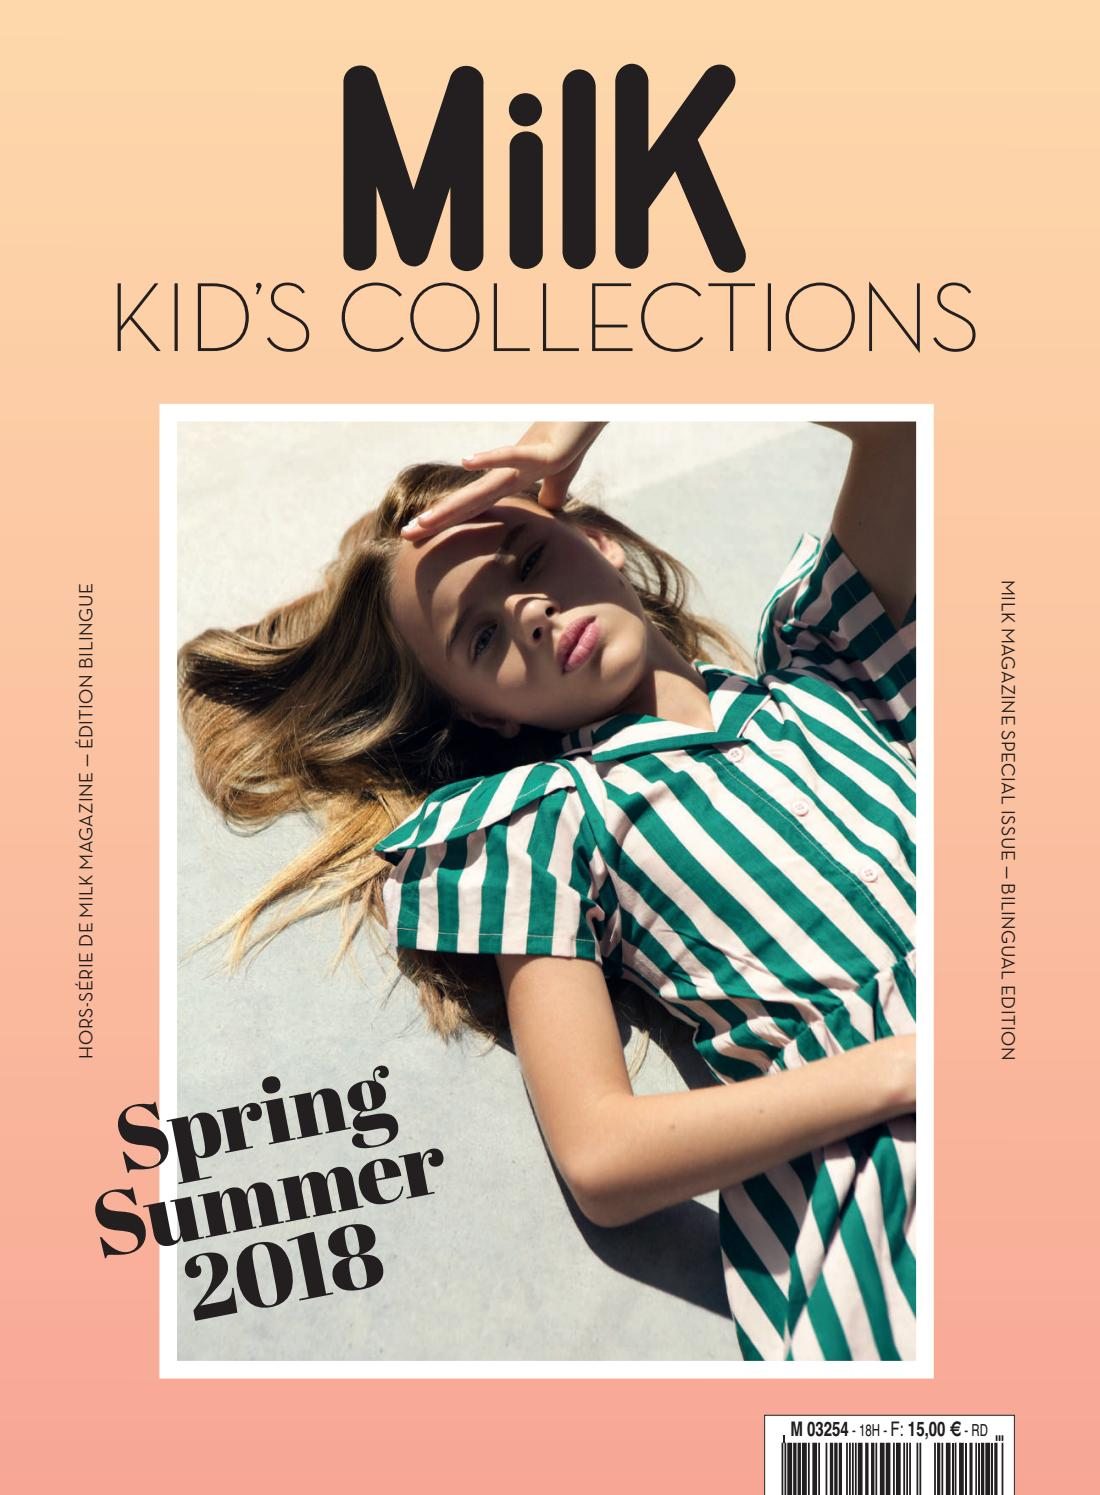 c45877d888ea Kidsco18 total by MILK - issuu